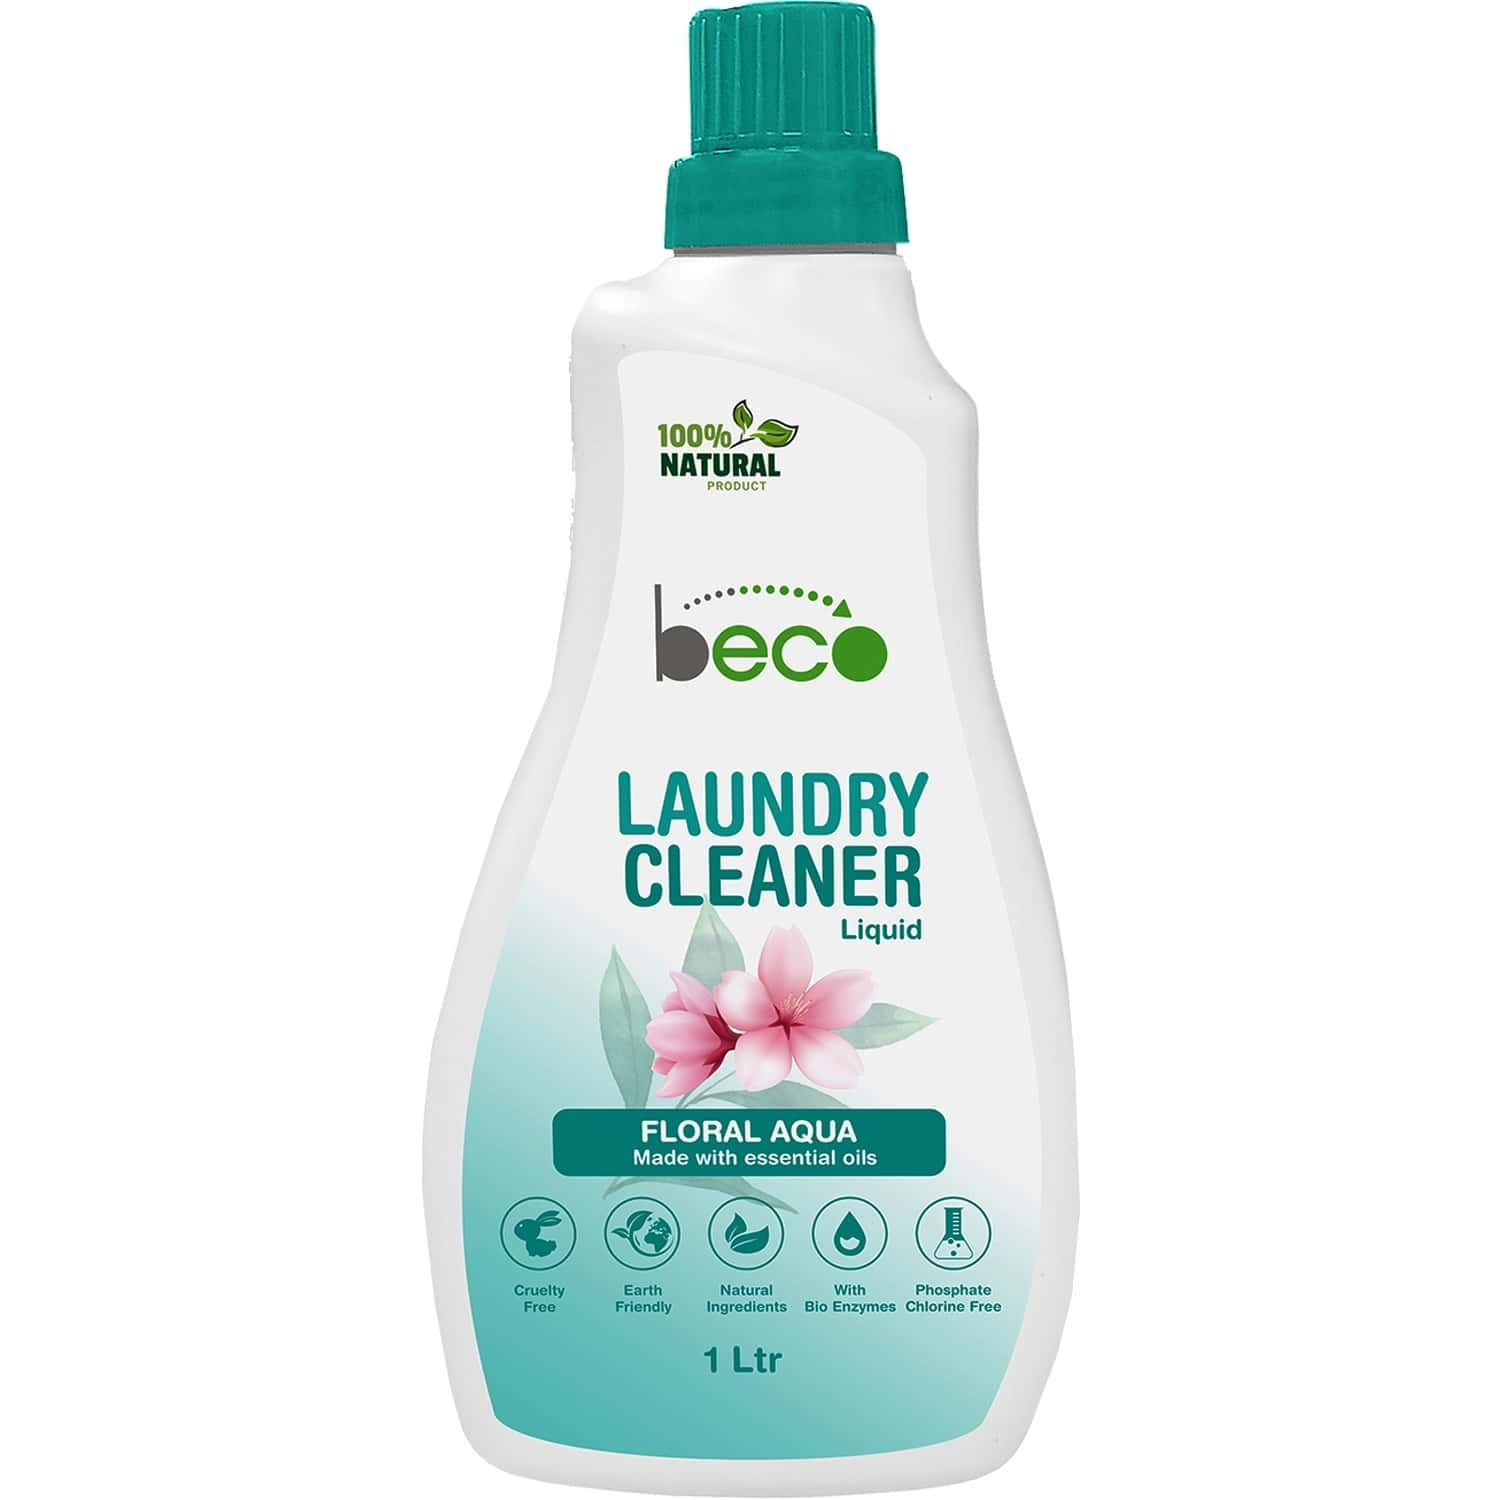 Beco Natural Laundry Detergent Liquid 1l- Baby Safe